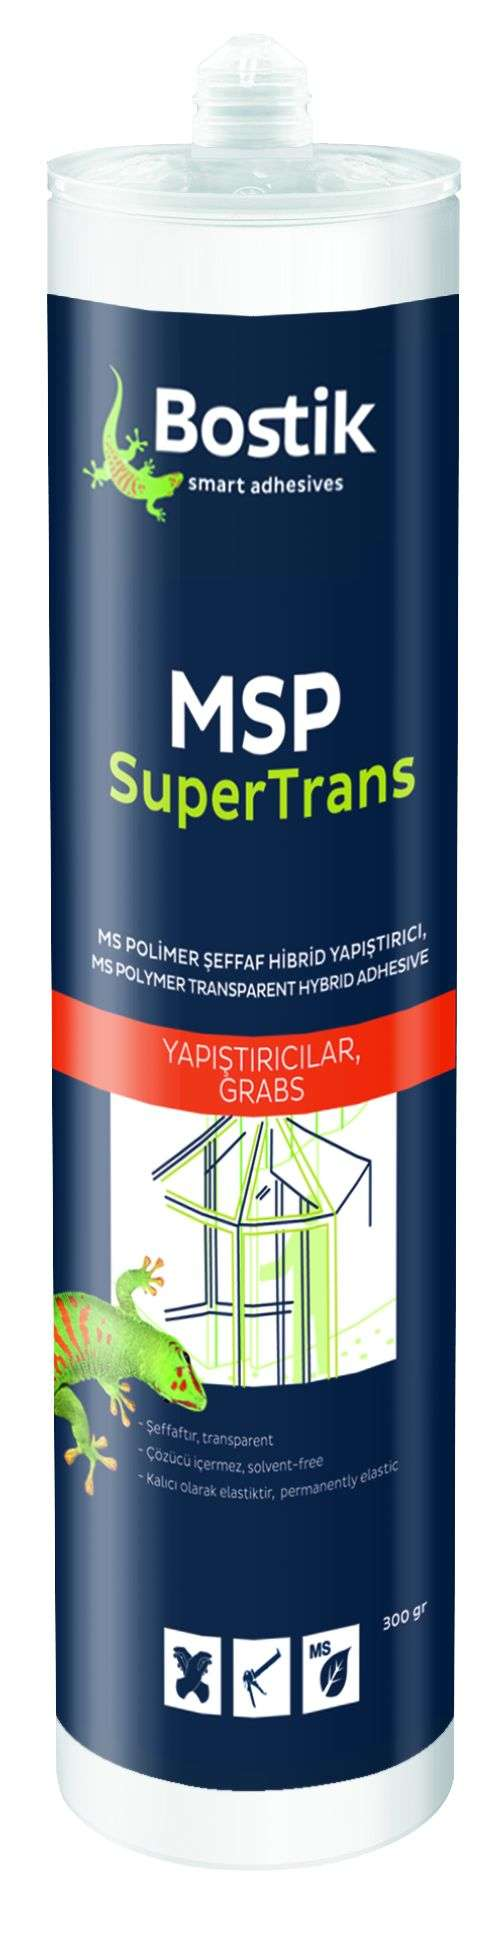 MSP SuperTrans